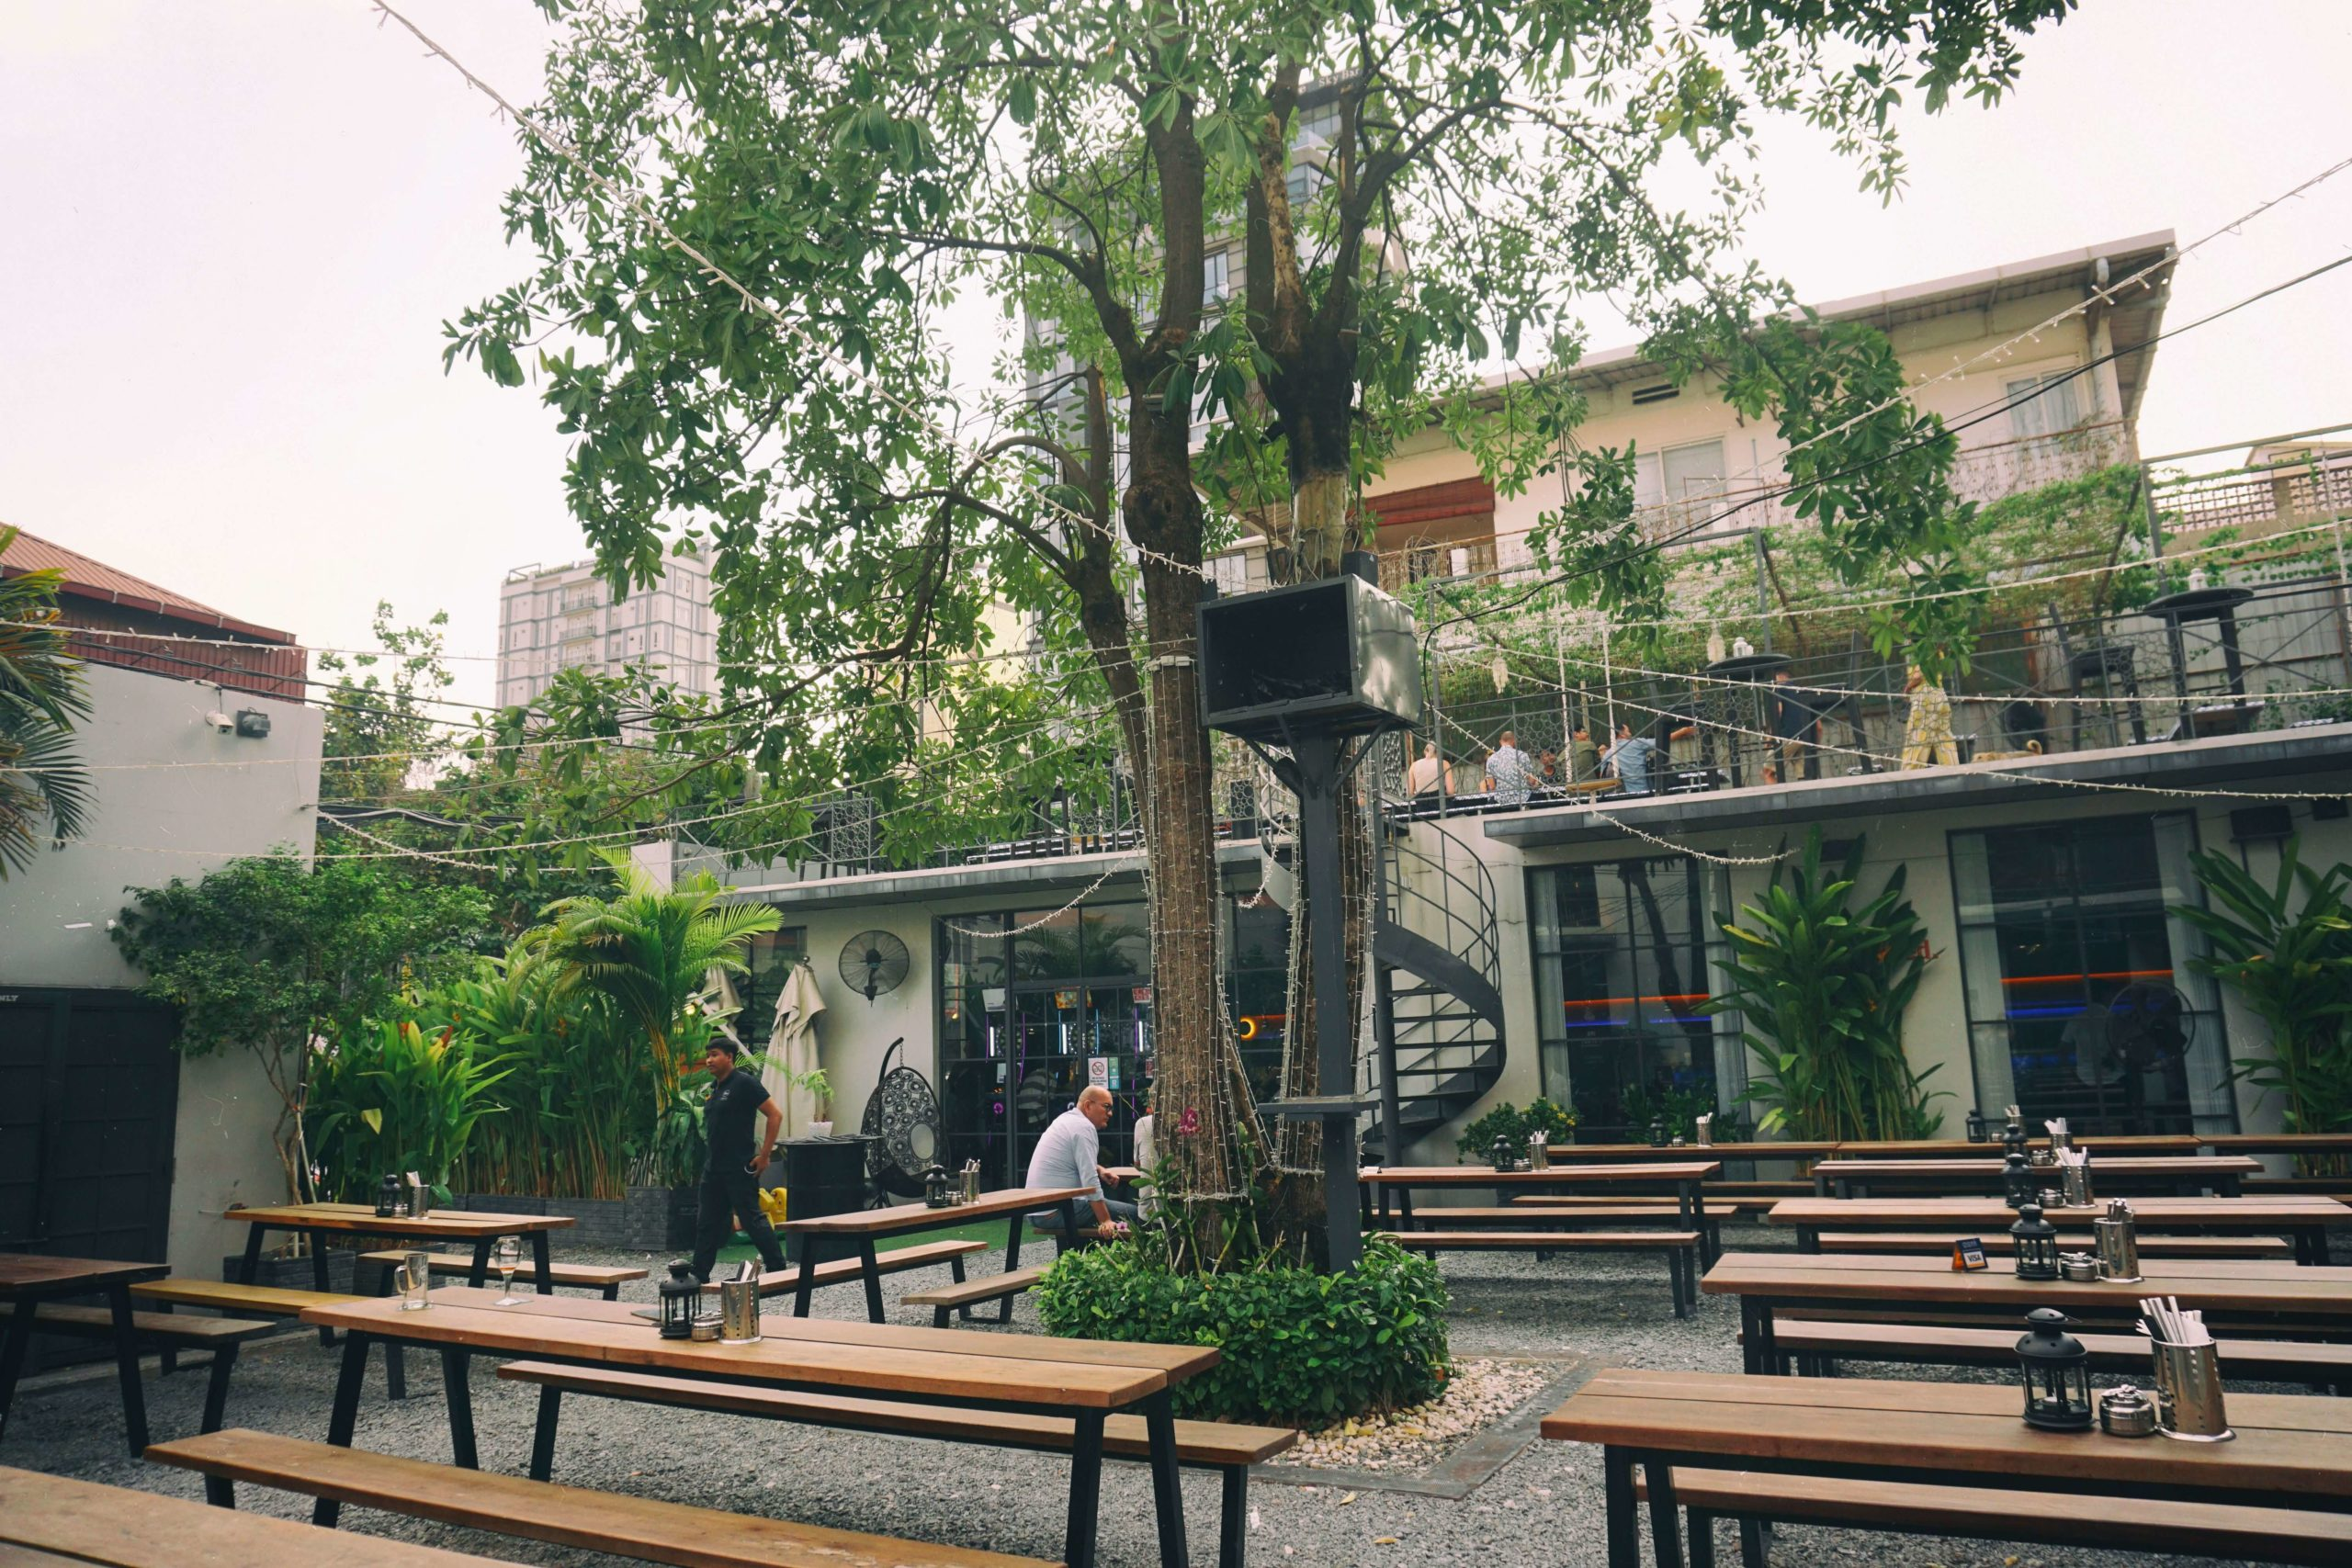 Hops Craft Beer Garden in Phnom Penh